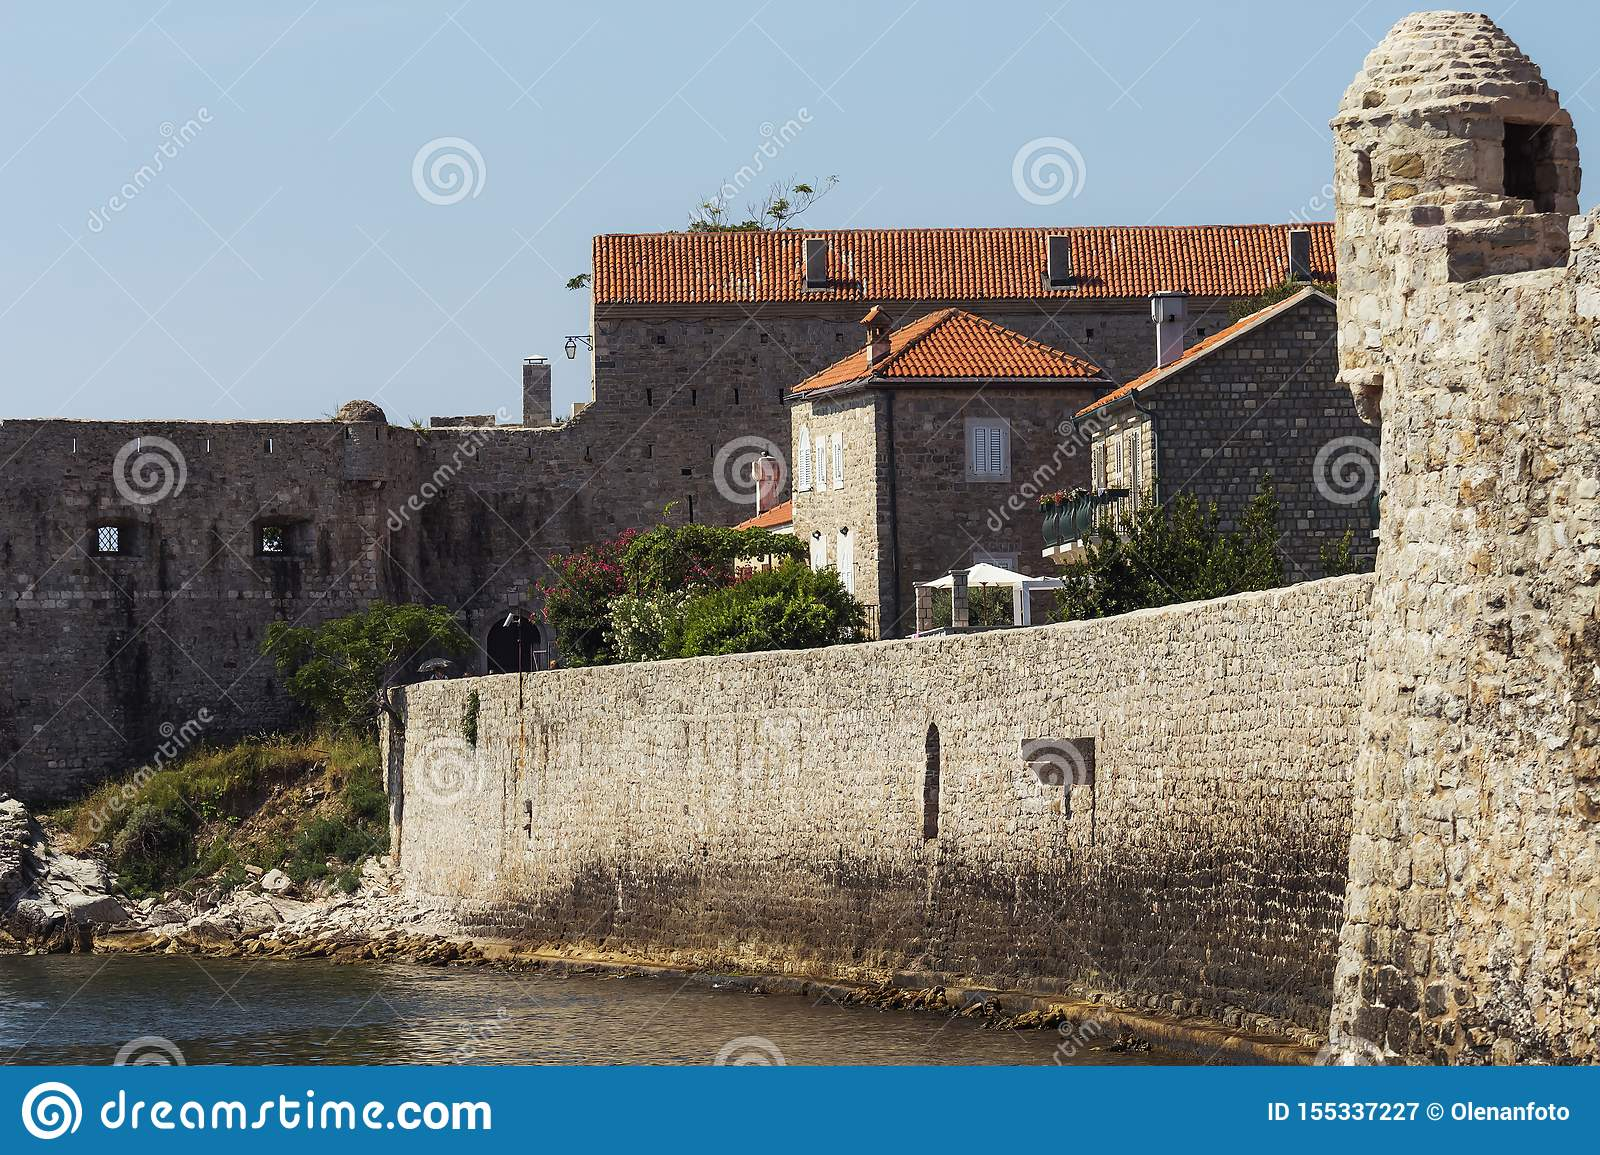 Old Town Budva, Montenegro. The view at the medieval citadel and the old town of Budva. Soft focus